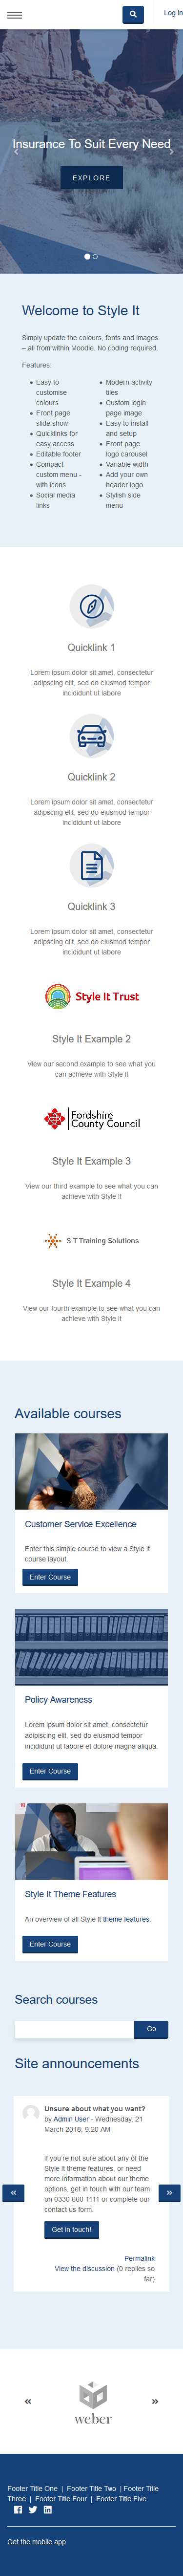 Style It - SIT Financial - Mobile